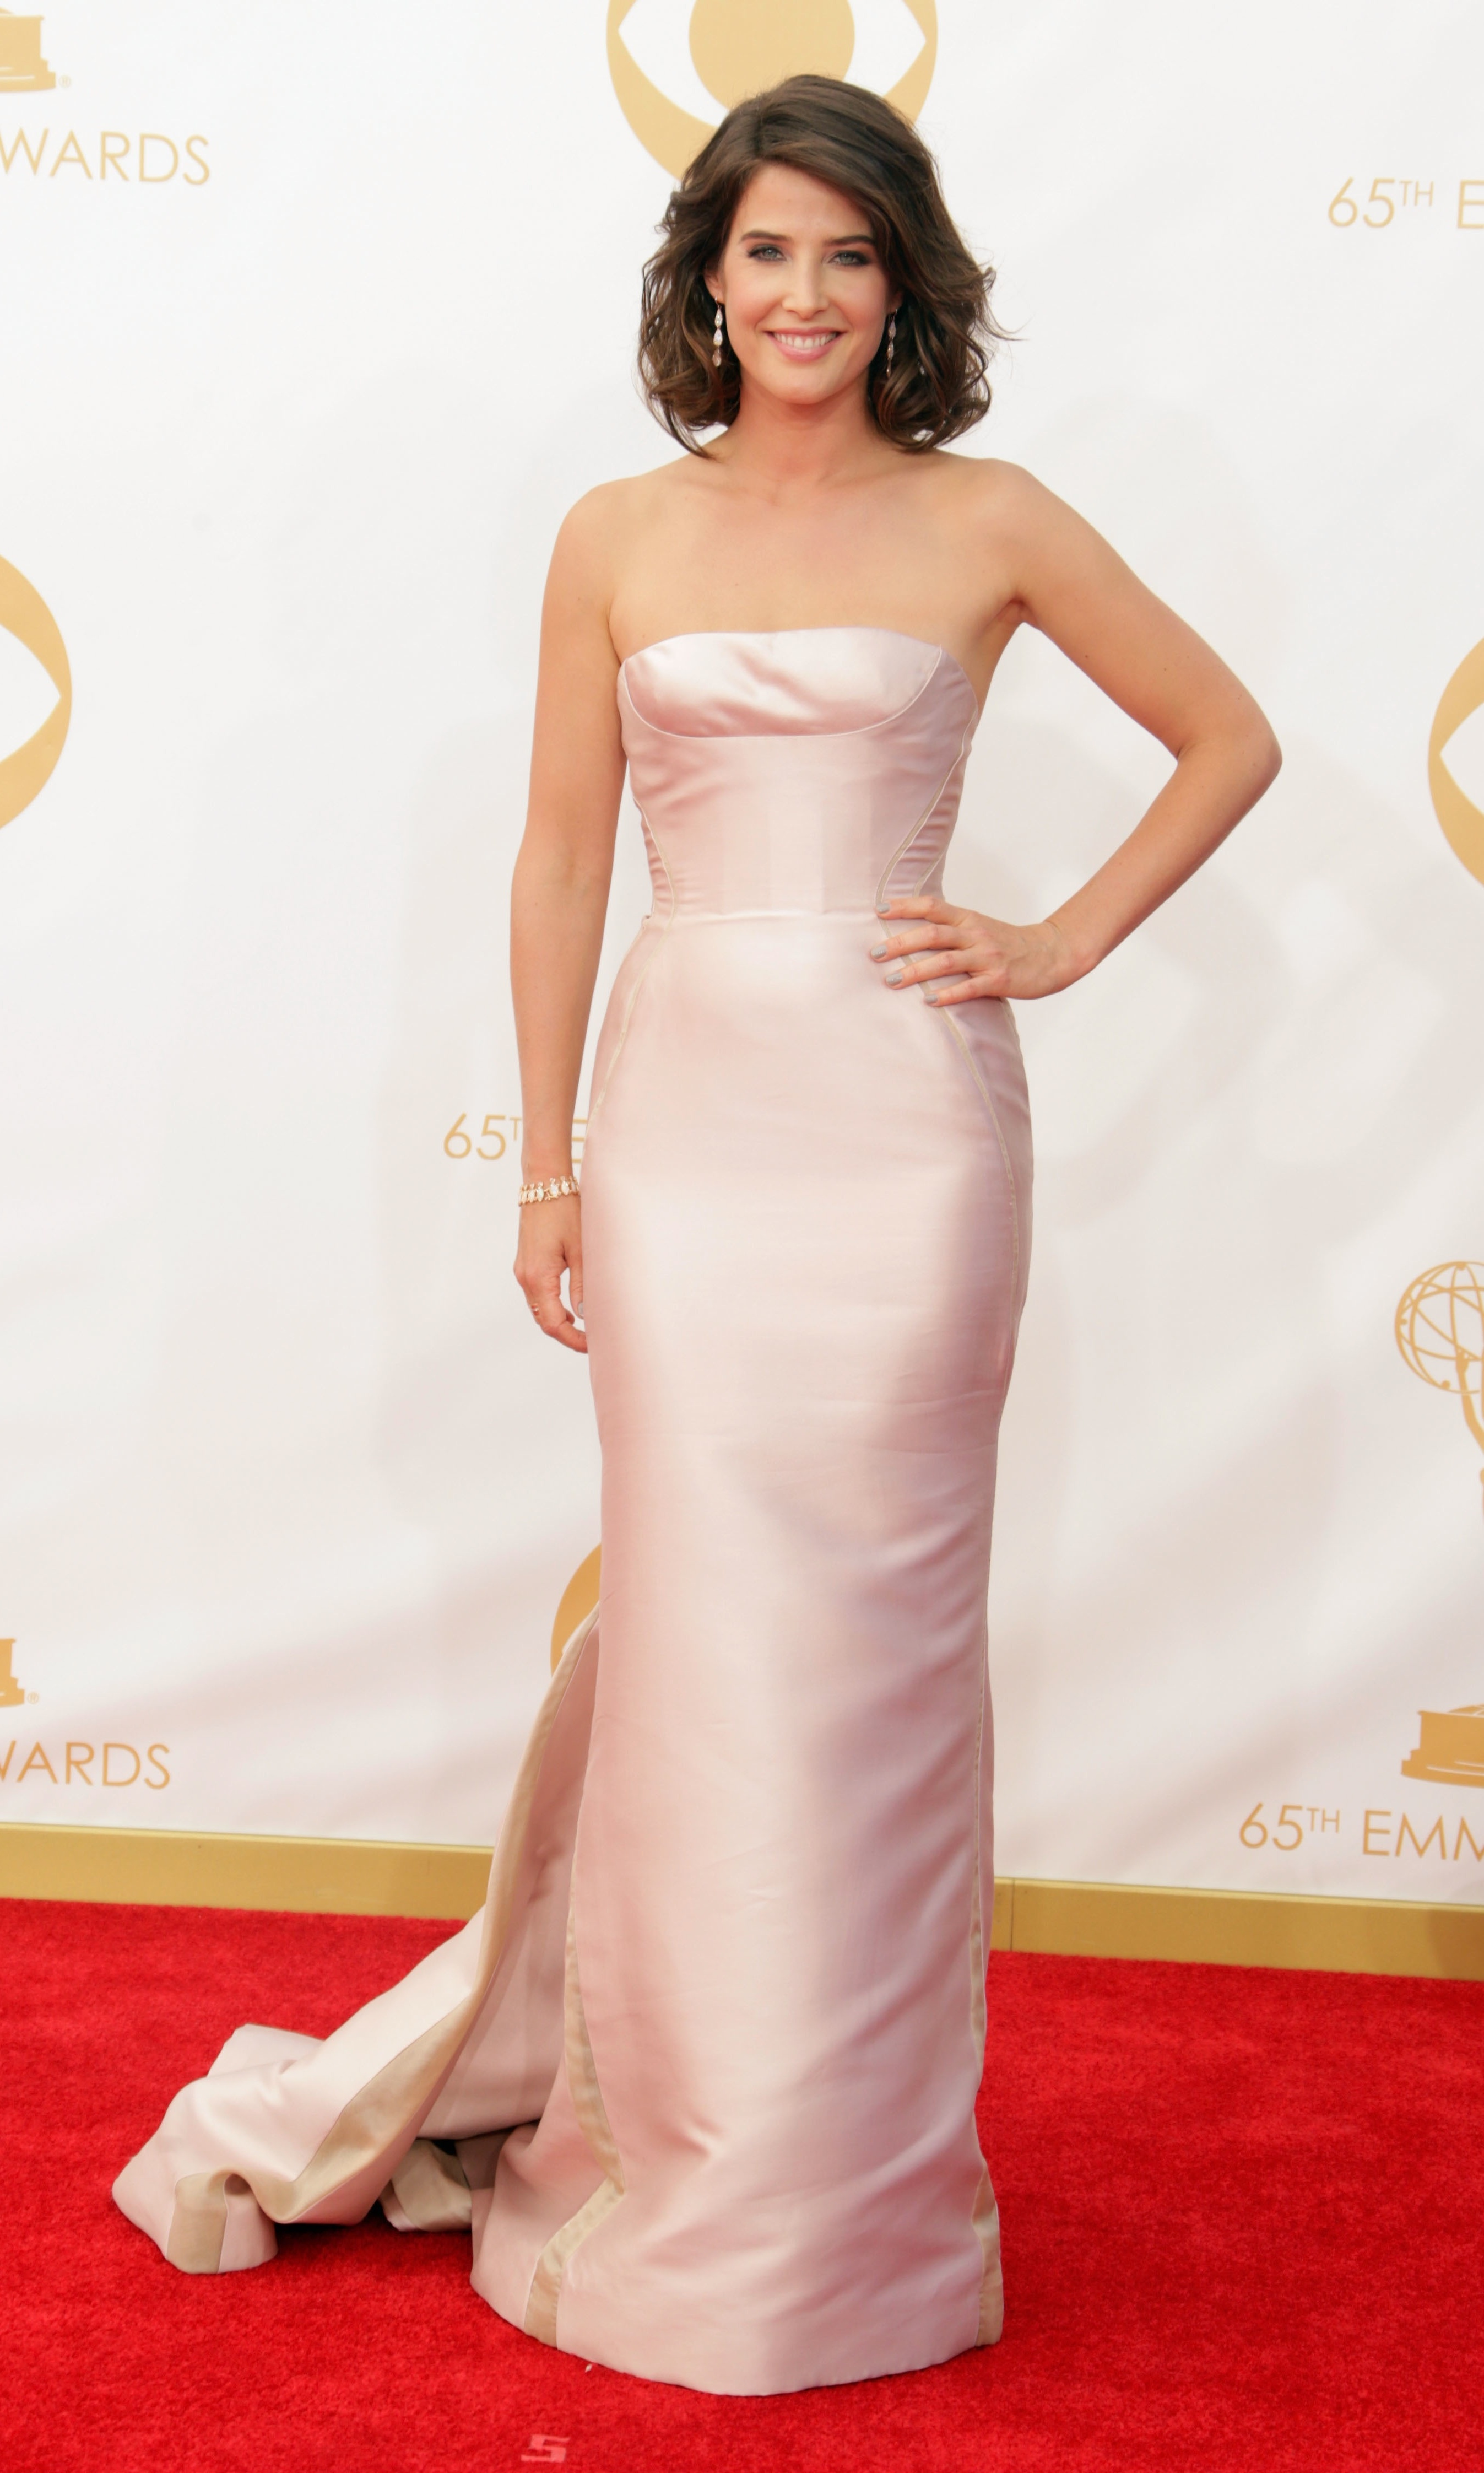 How I Met Your Mother's Cobie Smulders was also in the ranks of the J Mendel beauties, opting for a pale column gown with a train.